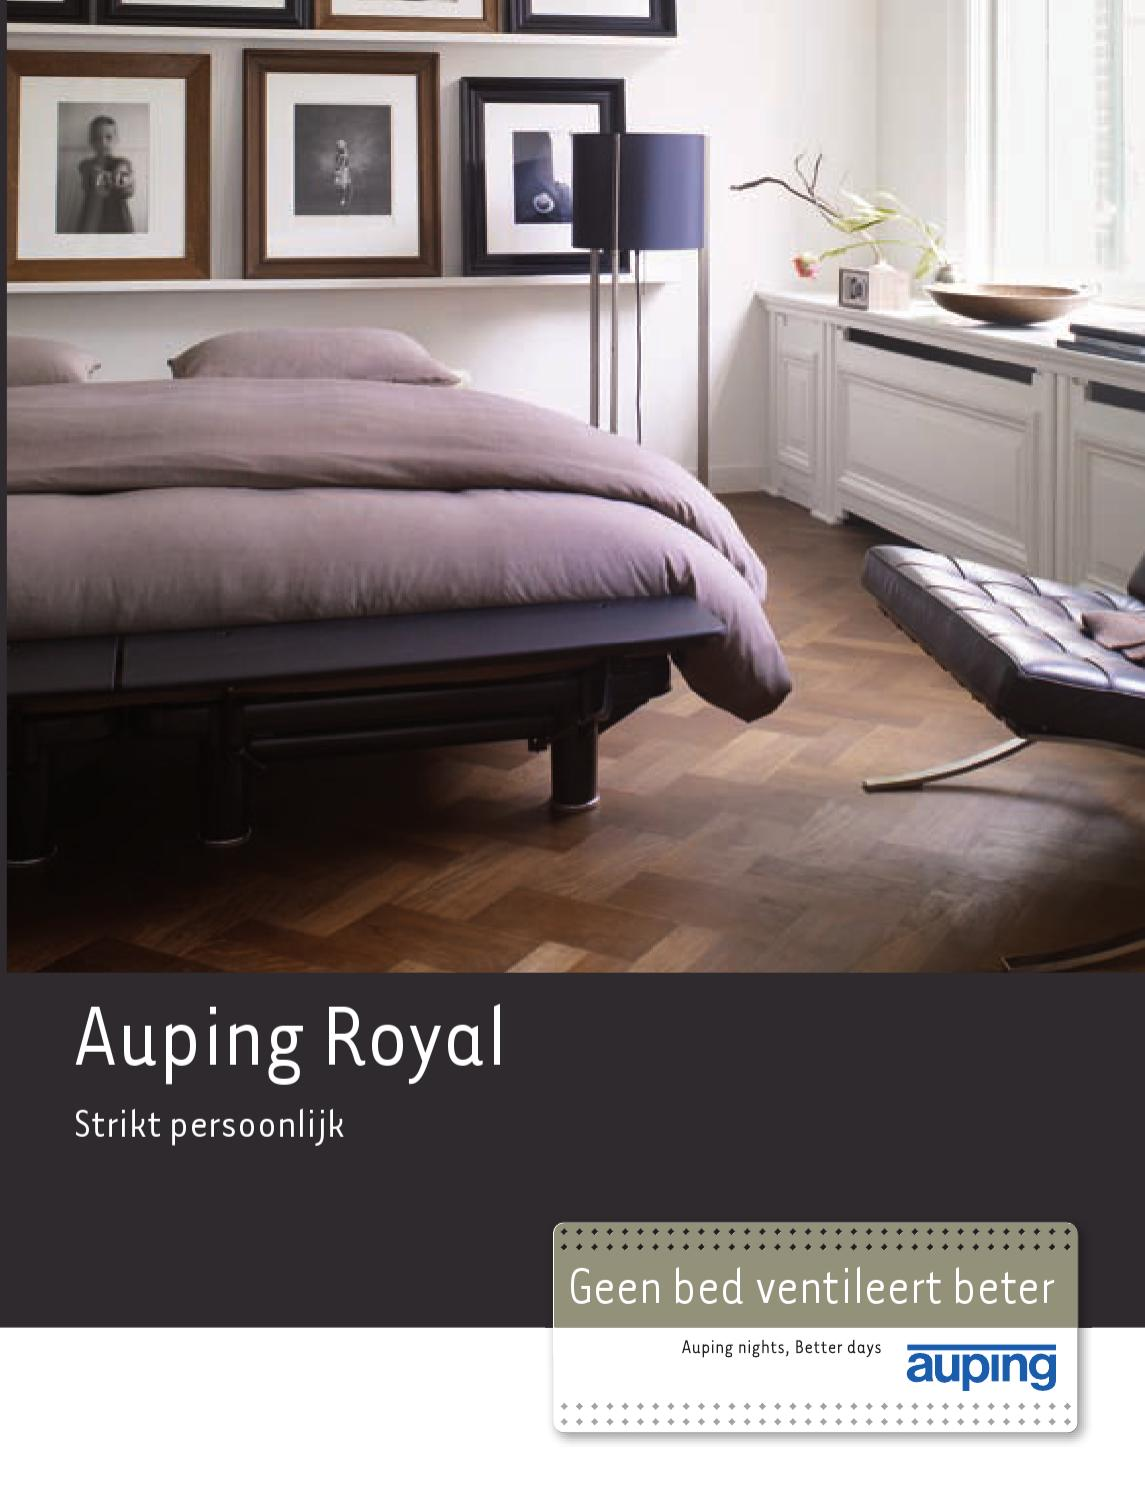 Auping Royal Hoofdbord.Auping Royal Brochure By Pim Van Velsen Issuu